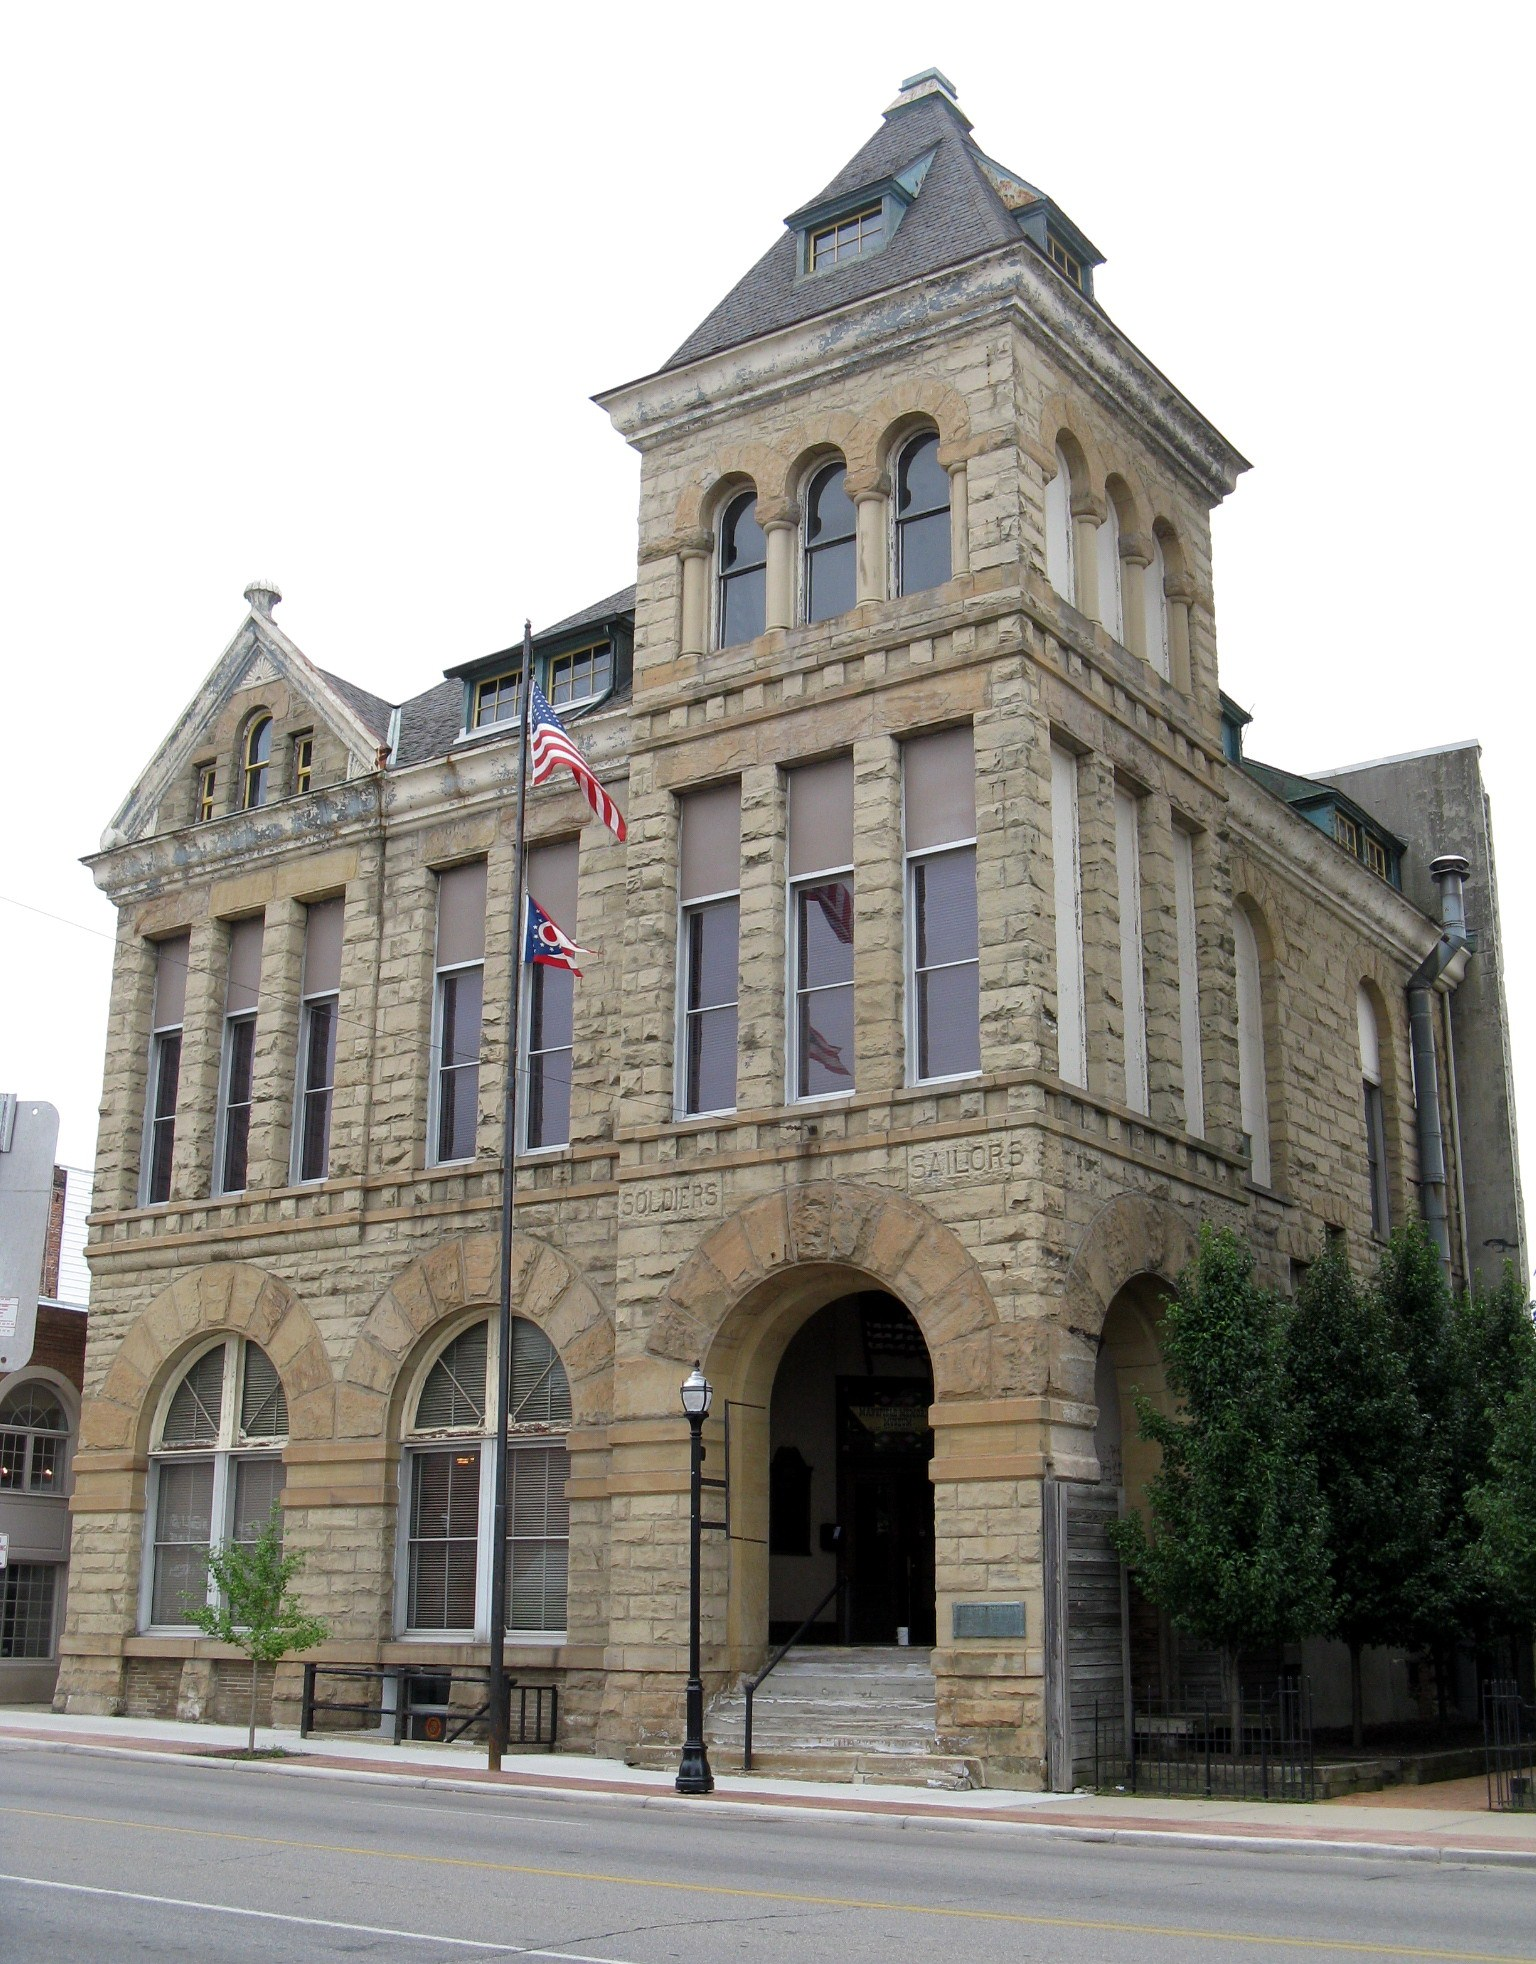 The Soldiers and Sailors Memorial Building, home of the Mansfield Memorial Museum